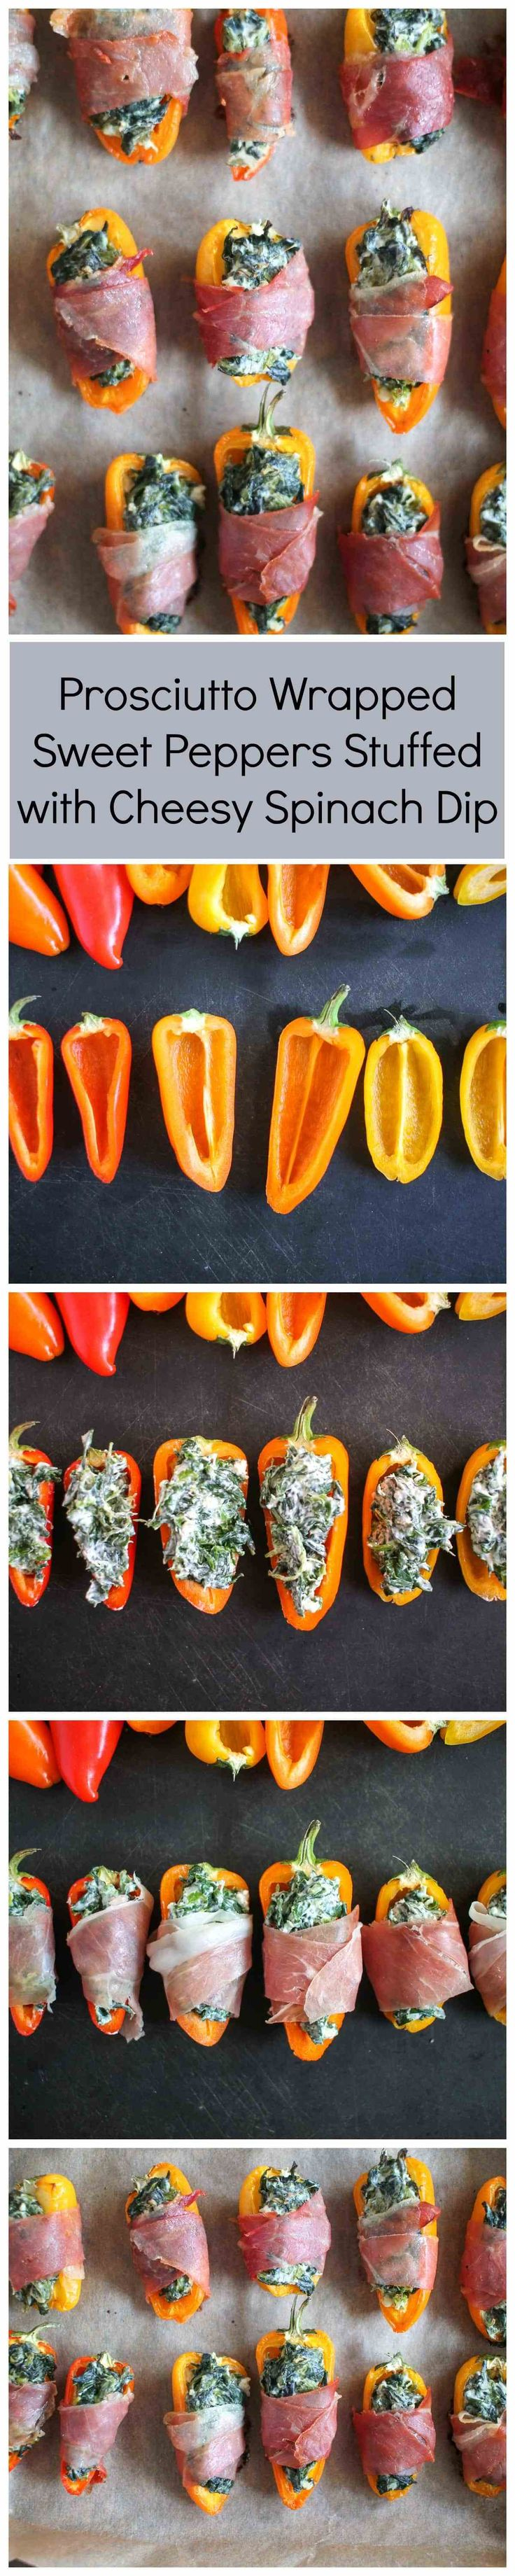 This appetizer is so easy! Sweet peppers are stuffed with a homemade cheesy spinach dip, wrapped with prosciutto, and then baked. It's a lovely combination of creamy cheesy flavors and crispy salty prosciutto. And the recipe is so simple that anyone can make it successfully. Stuffed Sweet Peppers will make a great addition to your (read more)